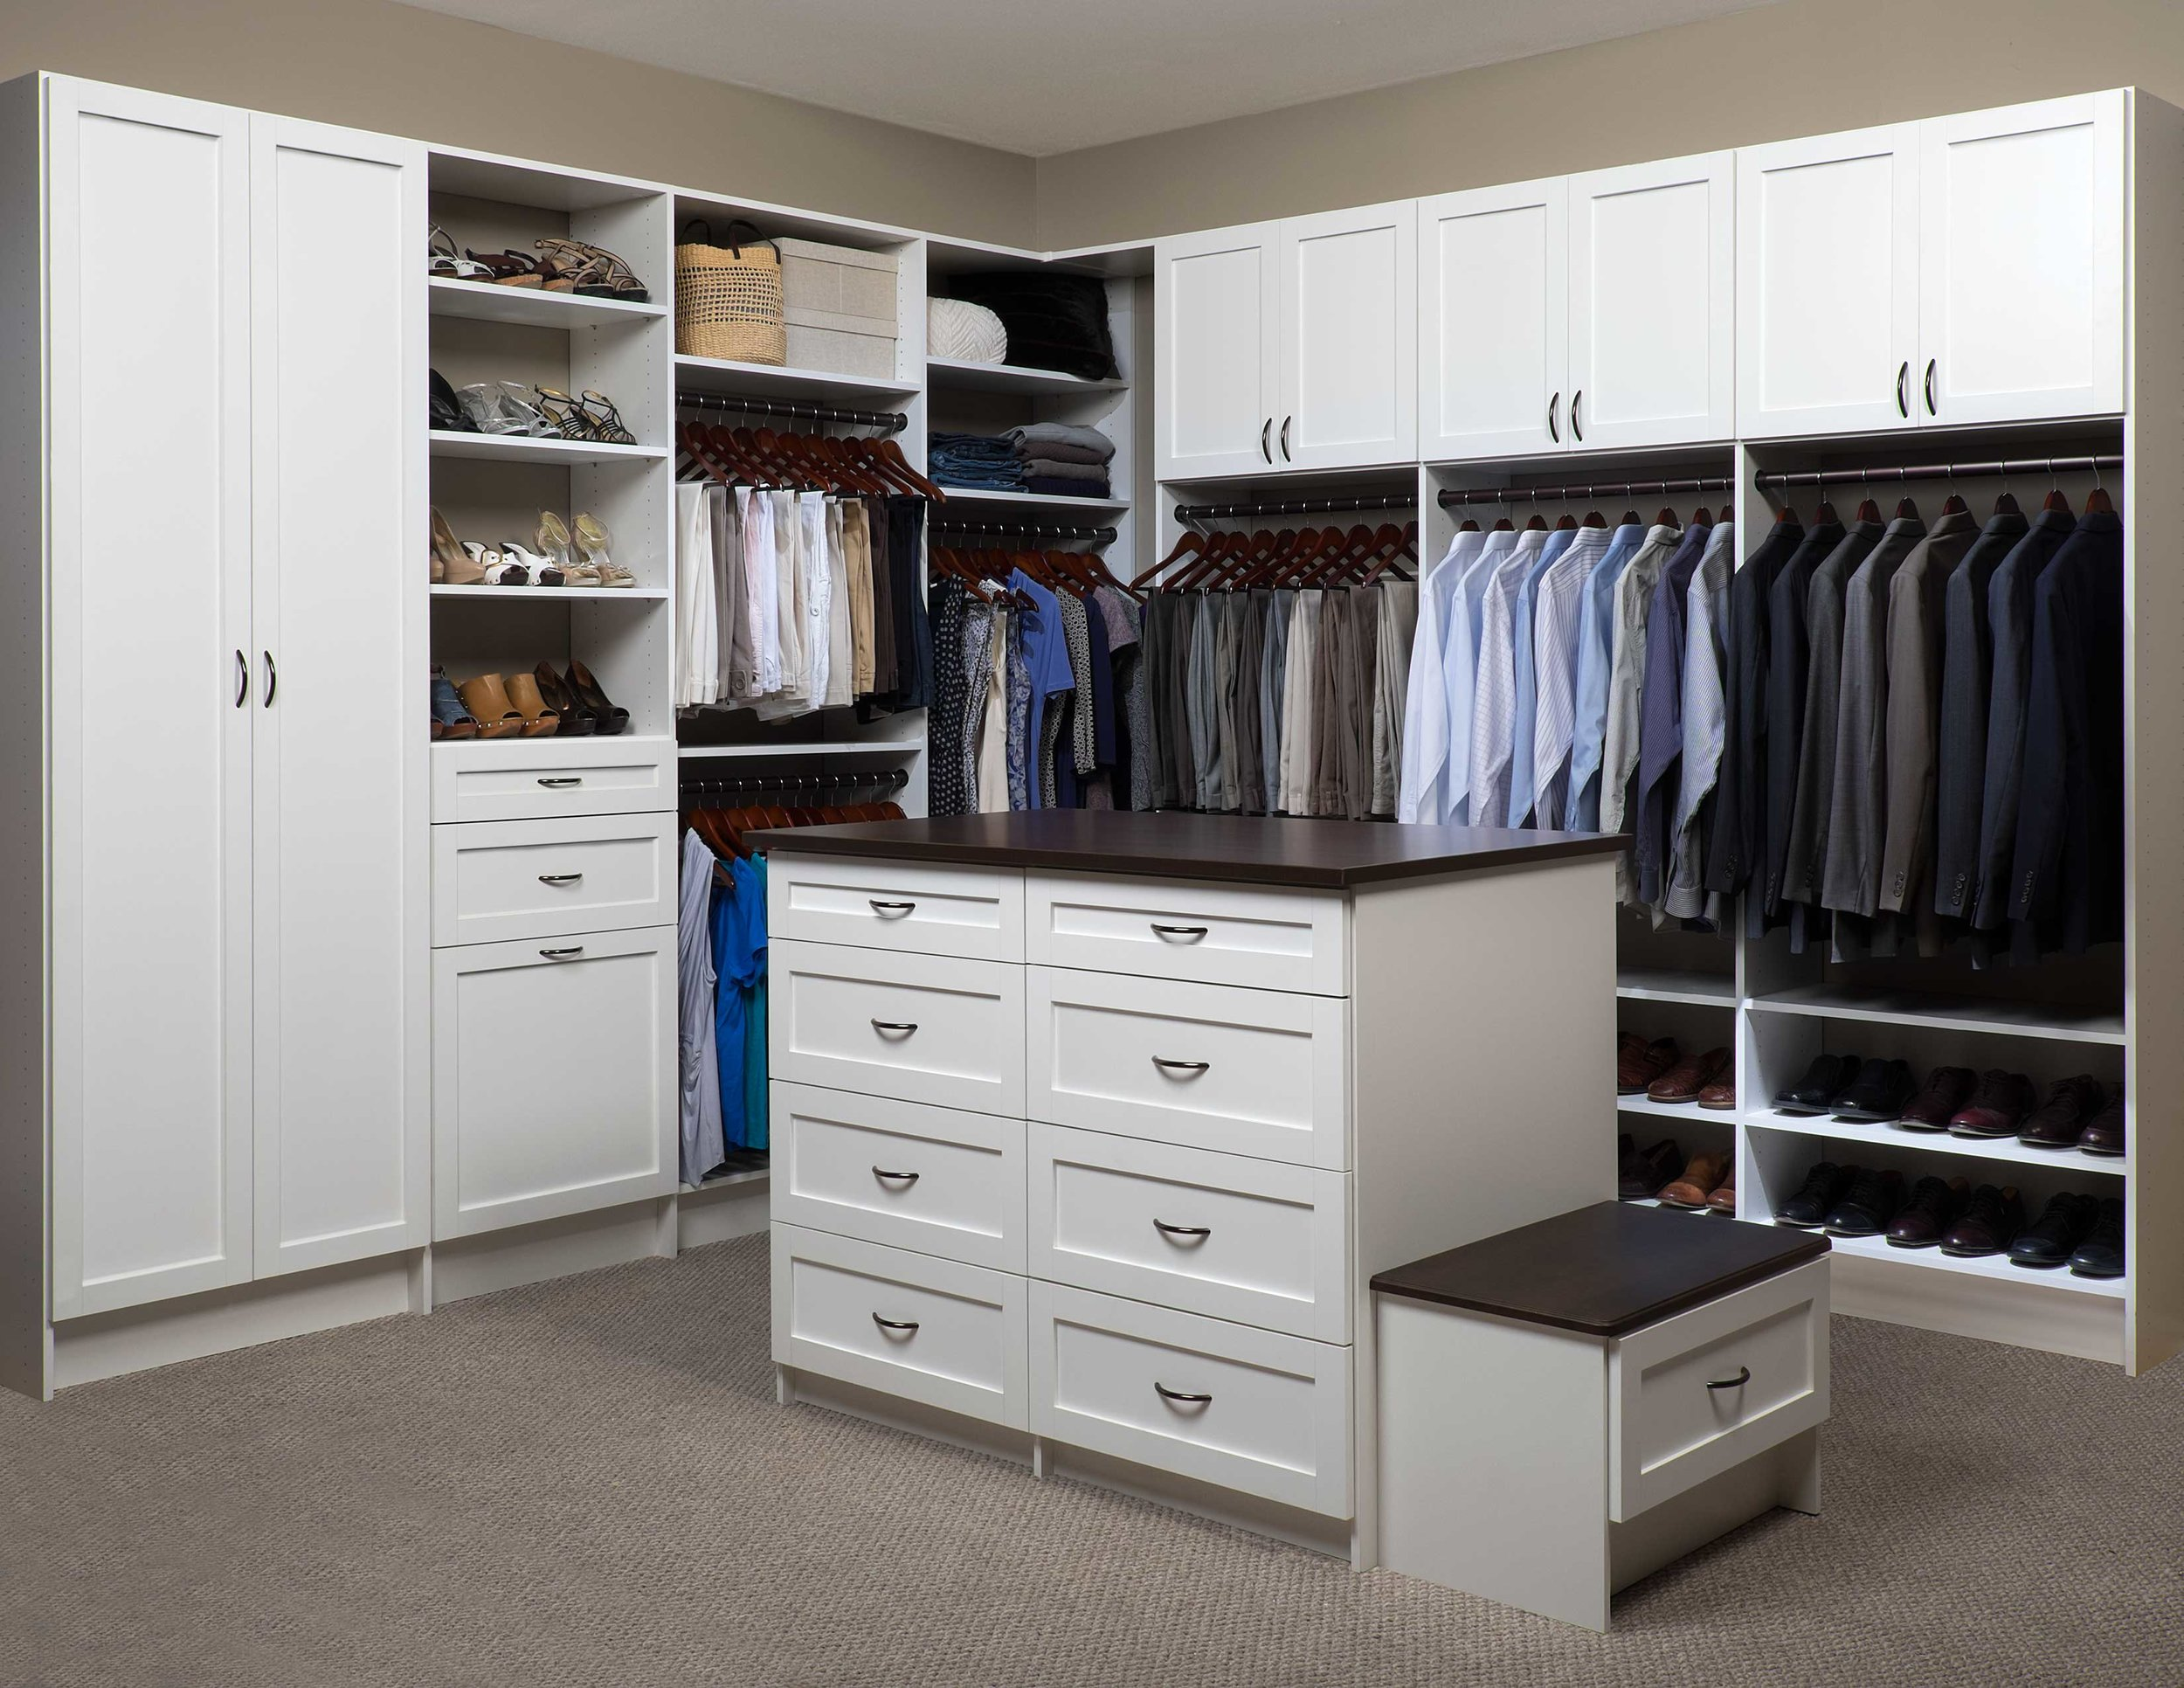 Closets of Tulsa incorporates closet drawers wherever space allows. A custom closet island is a beautiful way to maximize storage and efficiency.  Call now  for your FREE consultation and 3-D closet design:  918.609.0214